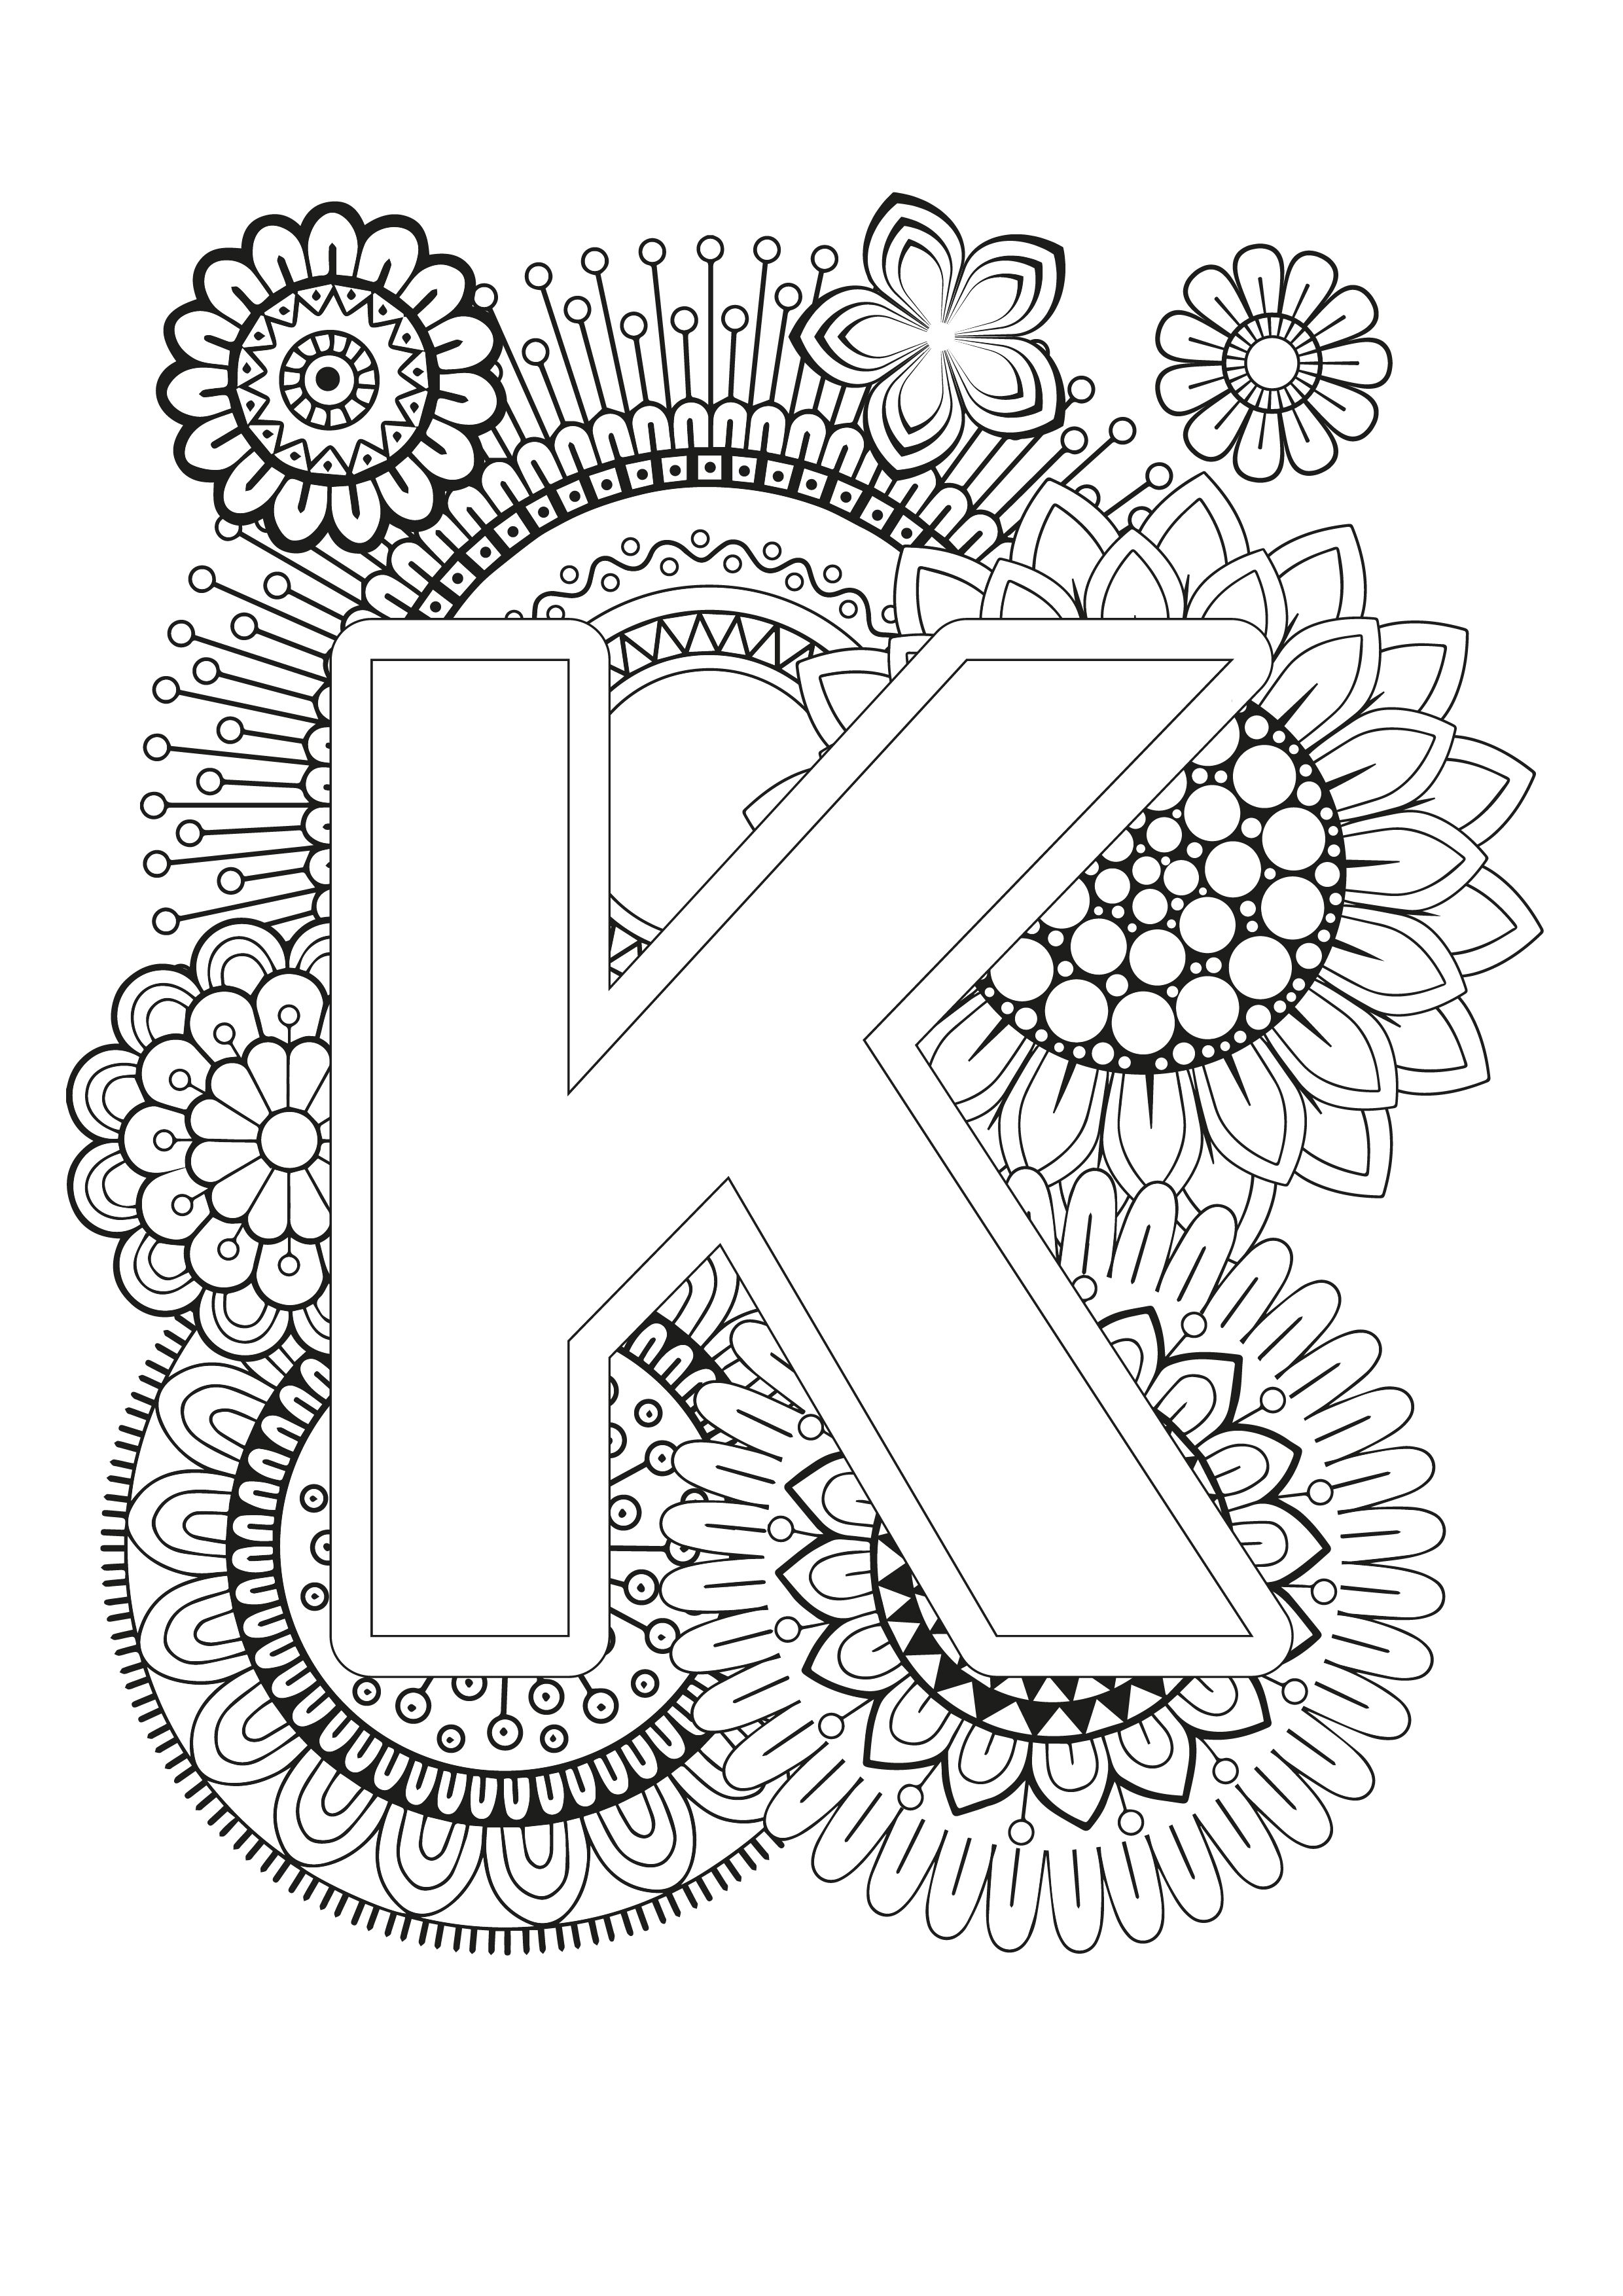 Mindfulness Coloring Page Alphabet Letter A Coloring Pages